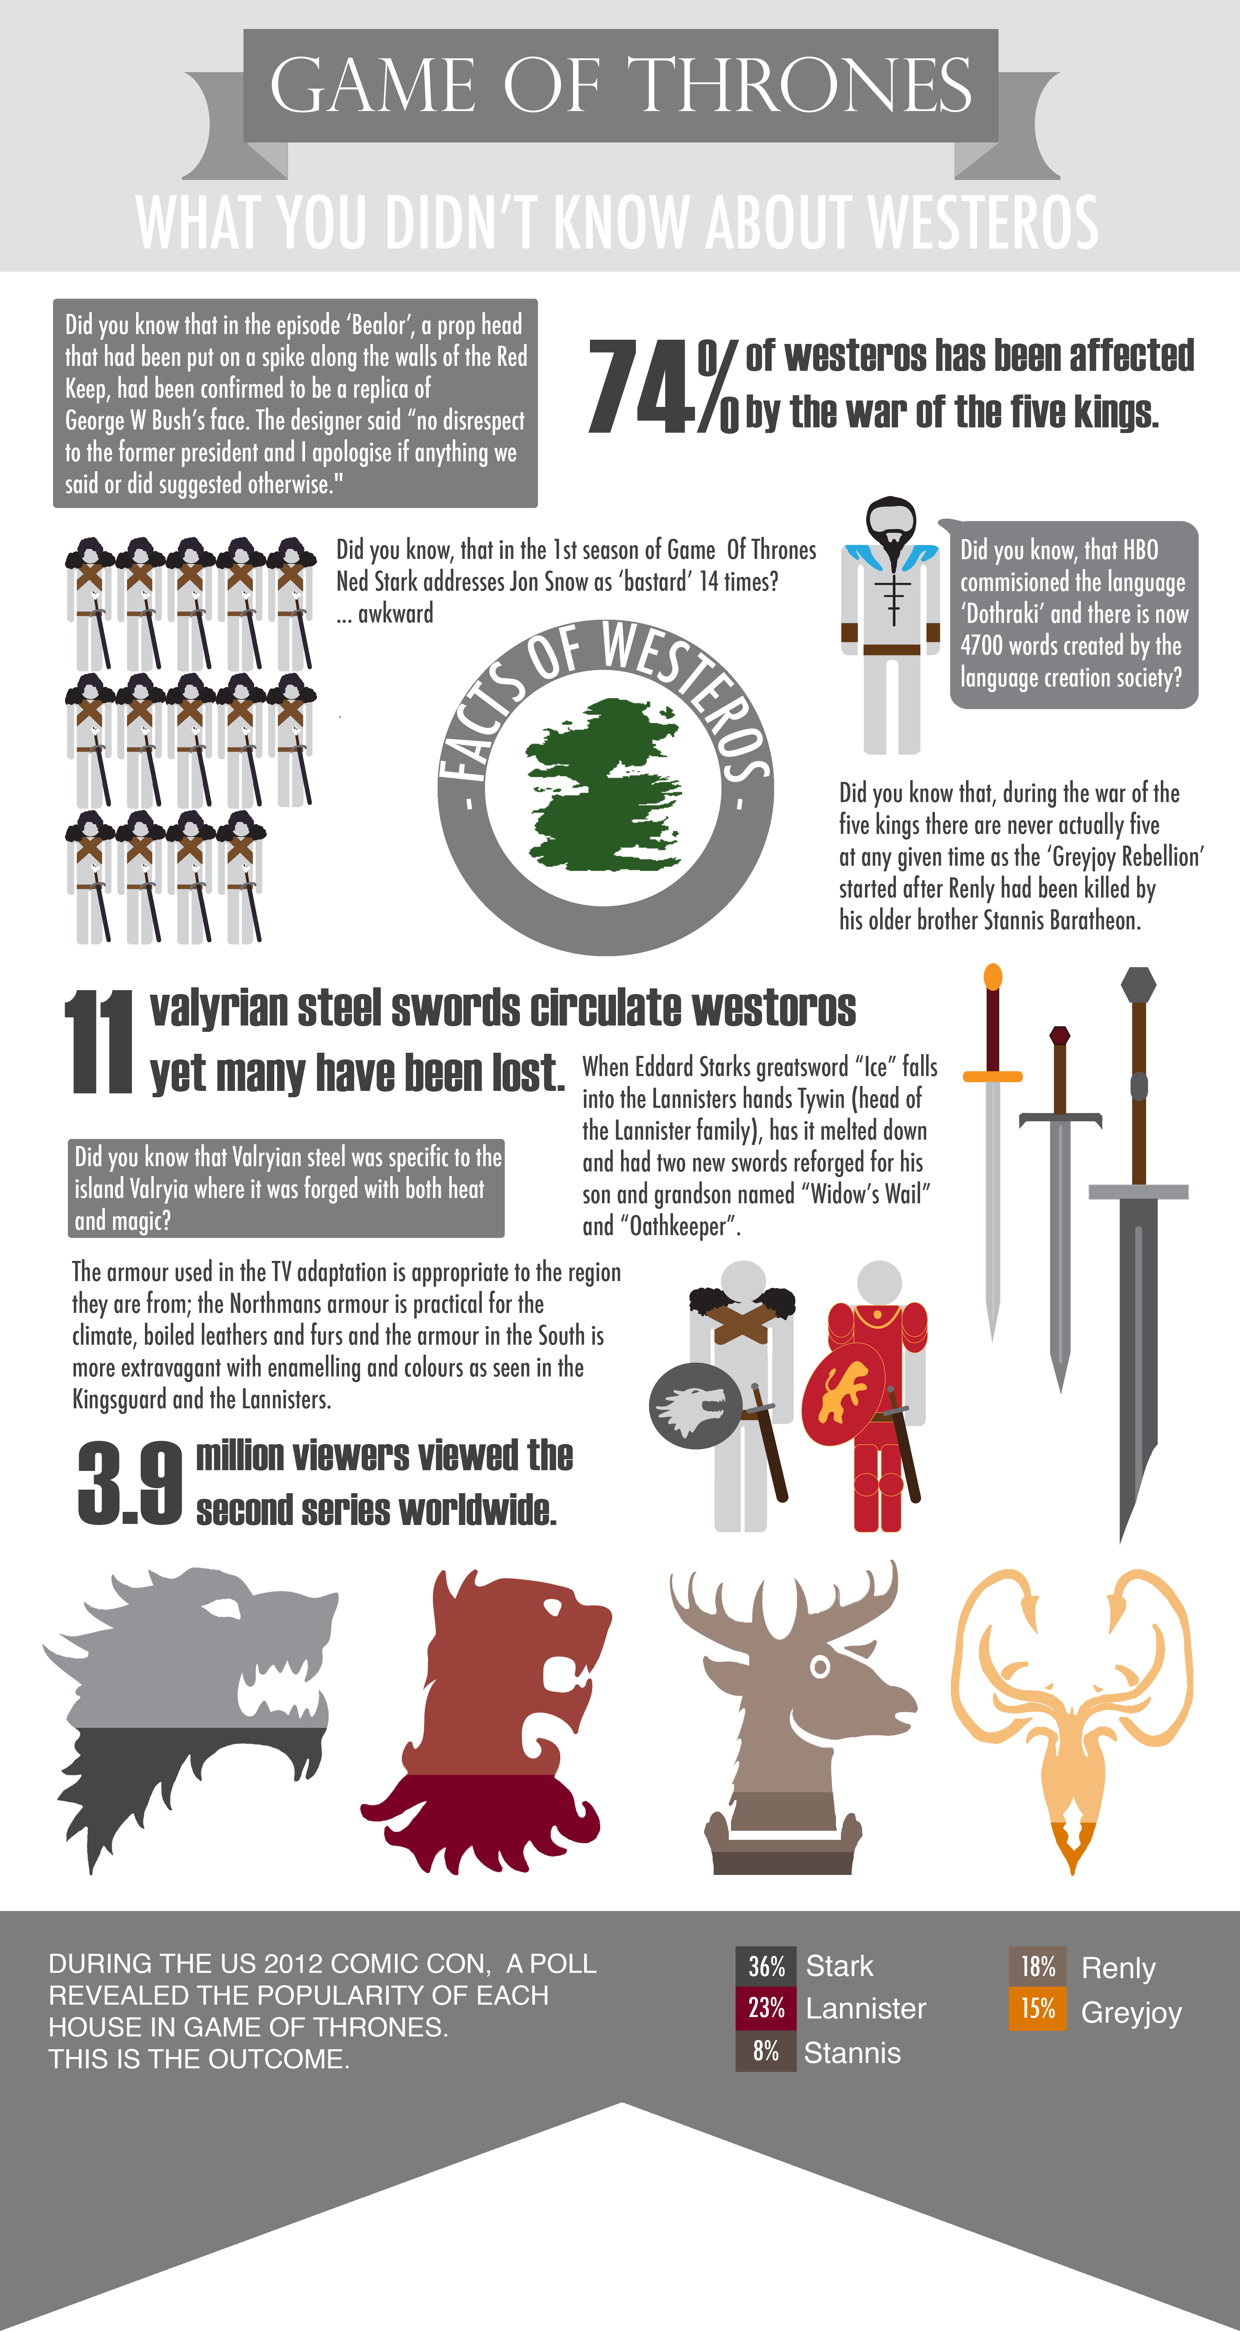 game of thrones info